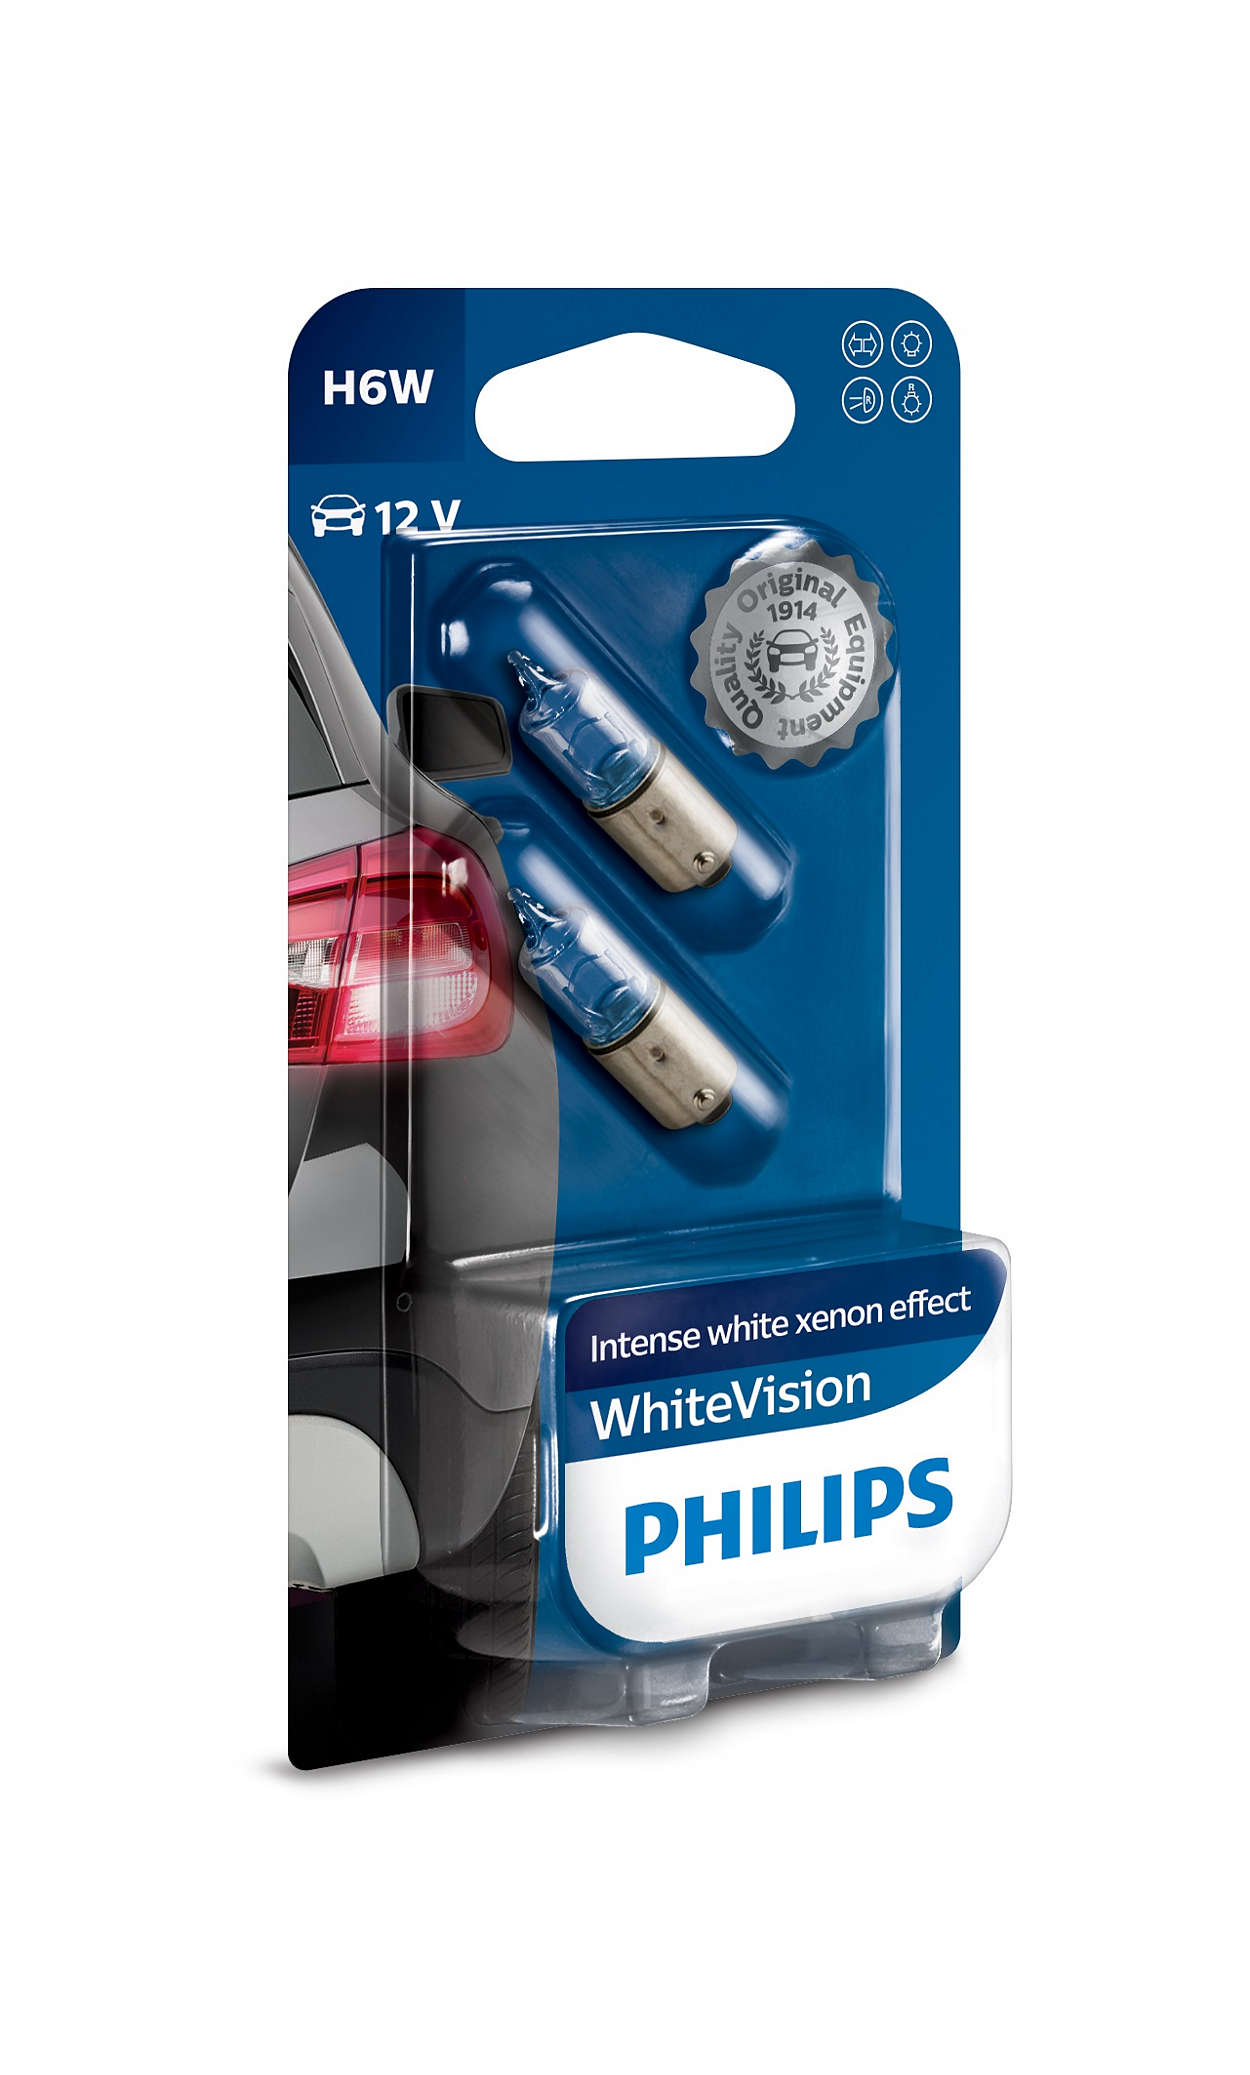 H7-12V-55W-Longlife-Ecovision-x4-Extra-Lifetime-2St-Philips-H6W-Visione-Bianca miniatura 2